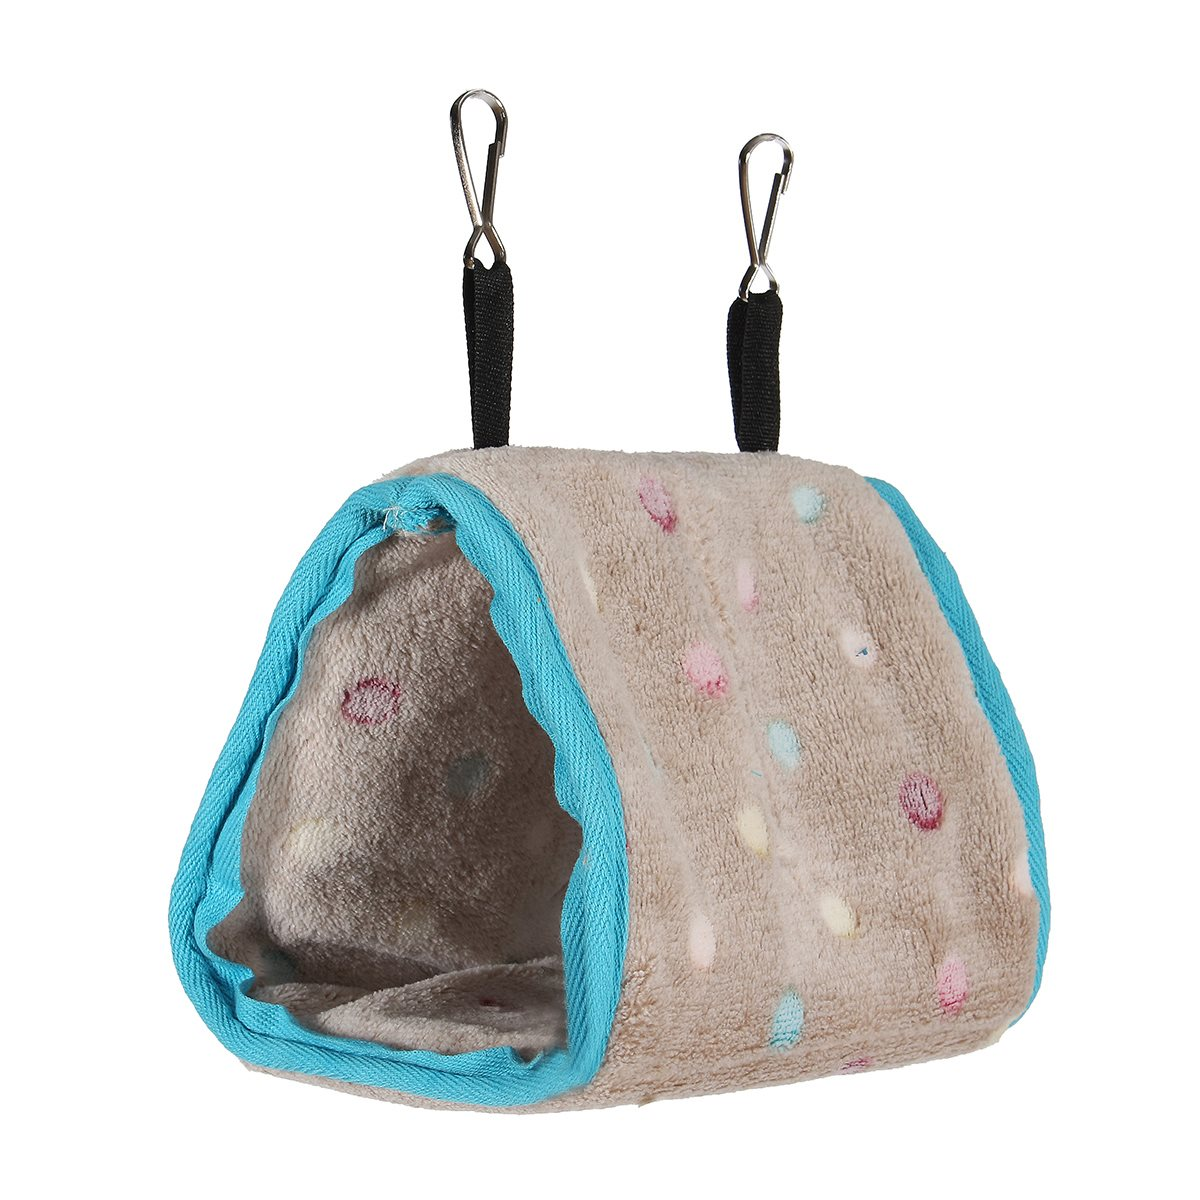 Hanging bed nest - Bird Bed Hanging House Bed Hammock Hanging Cave Cage Plush Snuggle Happy Hut Tent Winter Warm Hut Nest Cave